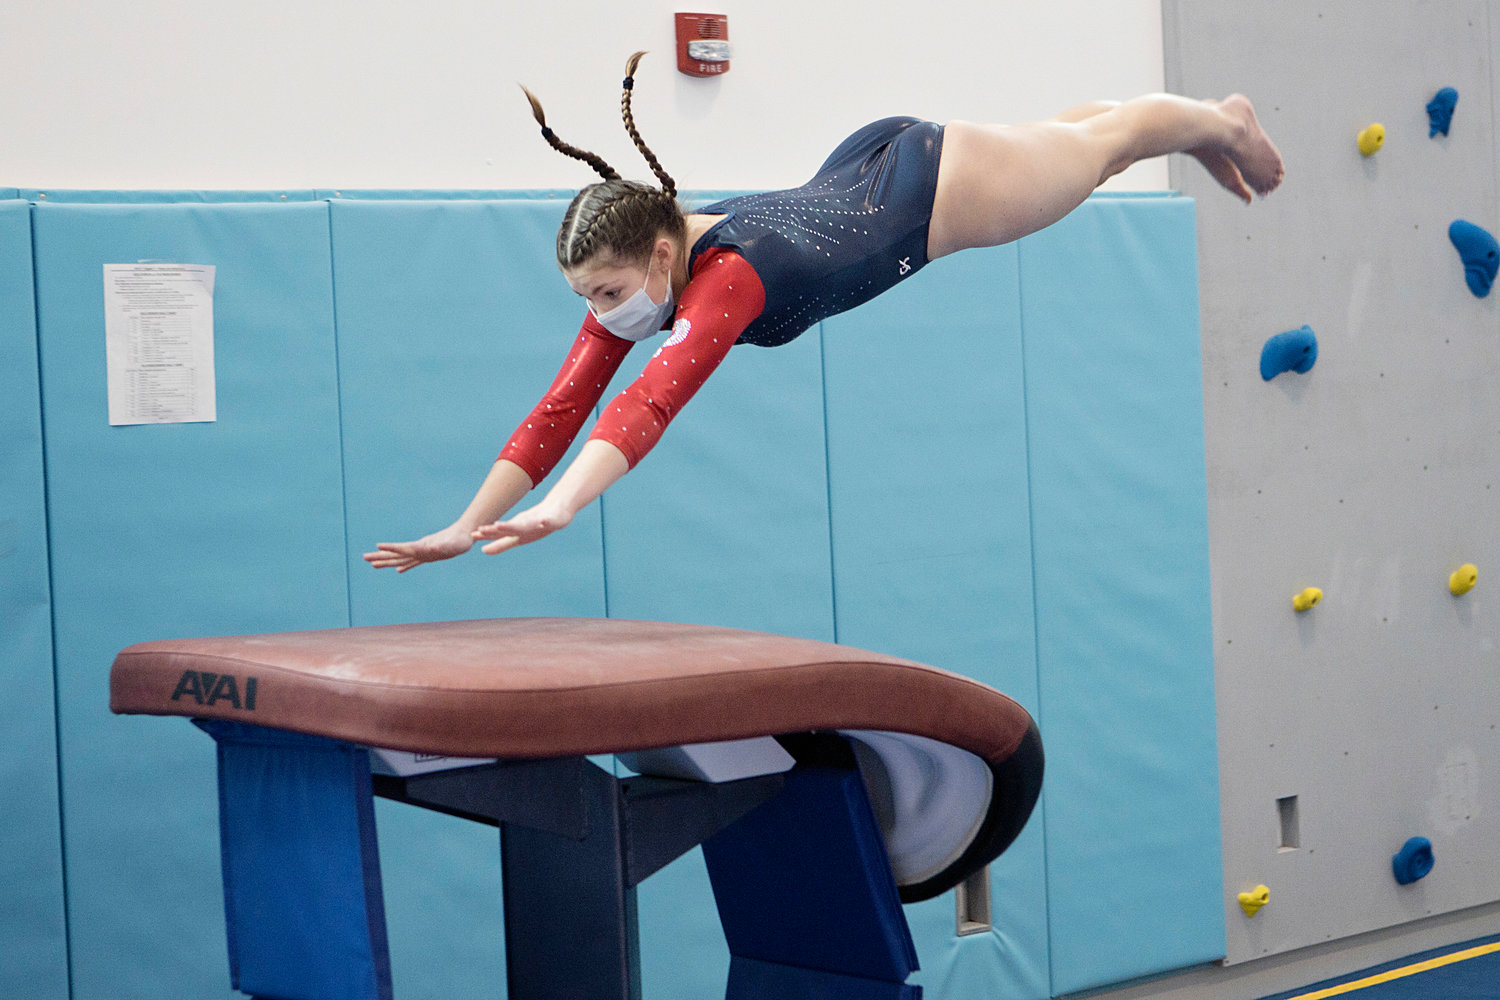 Portsmouth High's Jordan Burnley dives onto the vault while competing in the Region 1 State Gymnastics Championships on Saturday. Burnley earned an 8.85 on the event and led the Patriots with an all-around score of 33.25.